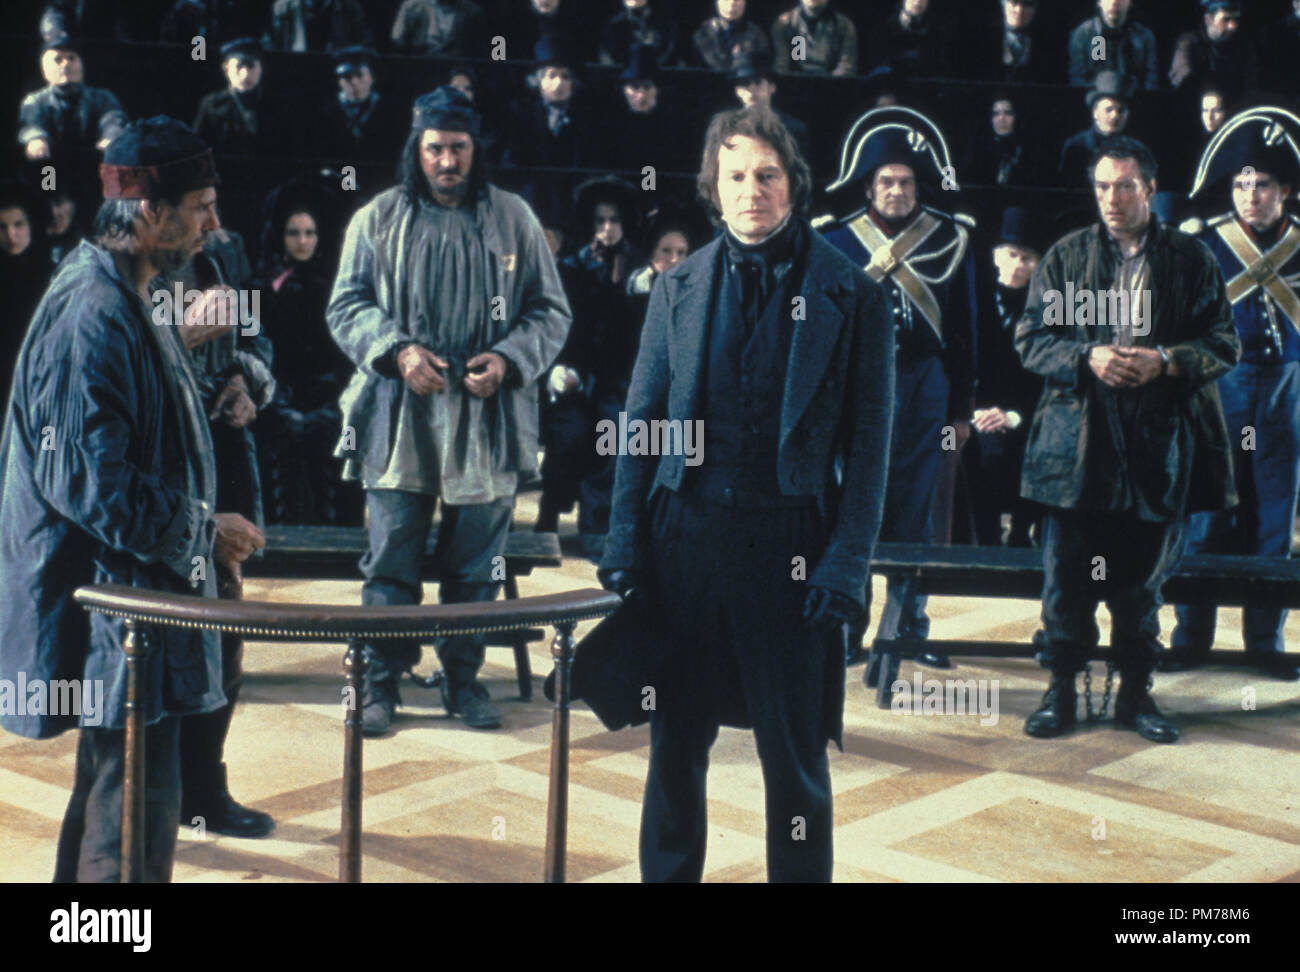 Film Still From Les Miserables Liam Neeson C 1998 Columbia Mandalay Photo Credit Rolf Konow File Reference 30996426tha For Editorial Use Only All Rights Reserved Stock Photo Alamy